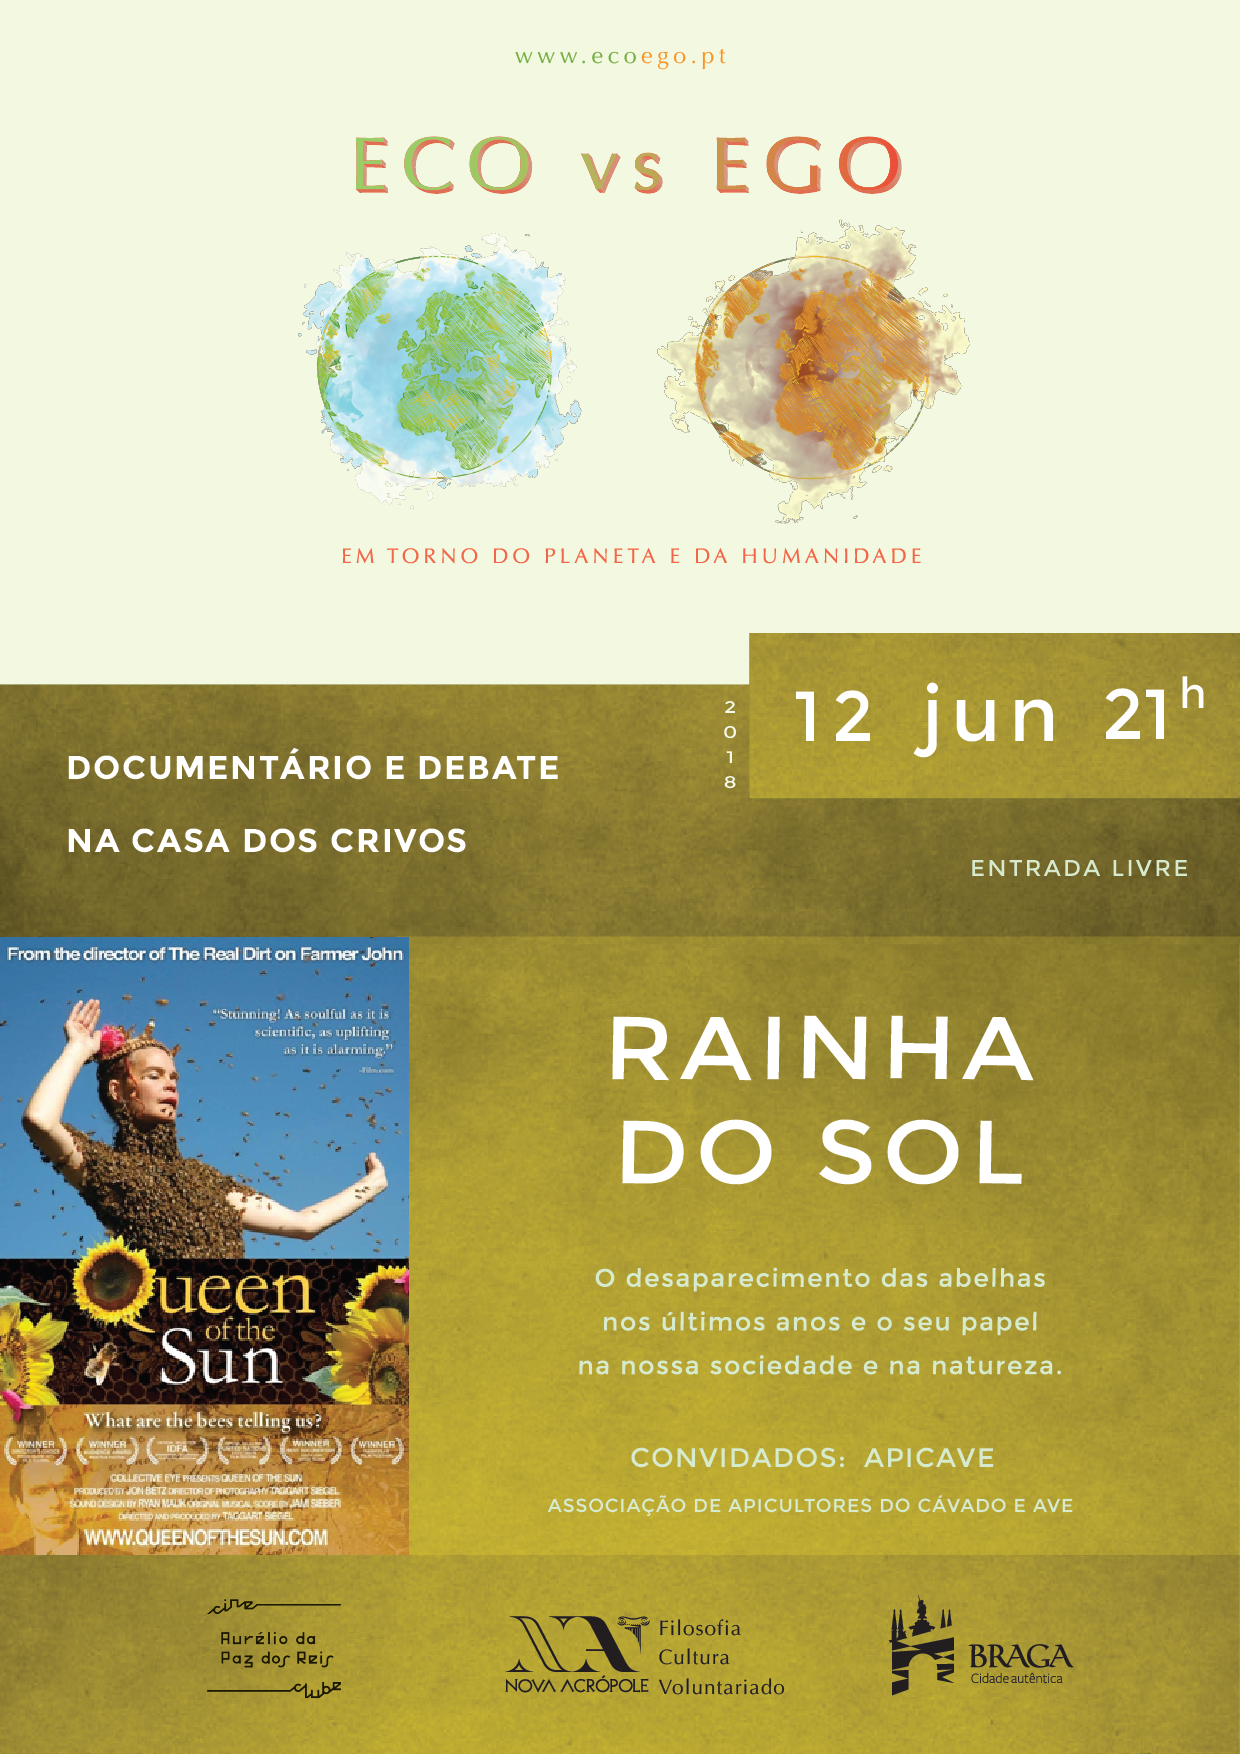 Eco vs Ego - Rainha do Sol cartaz-01.png